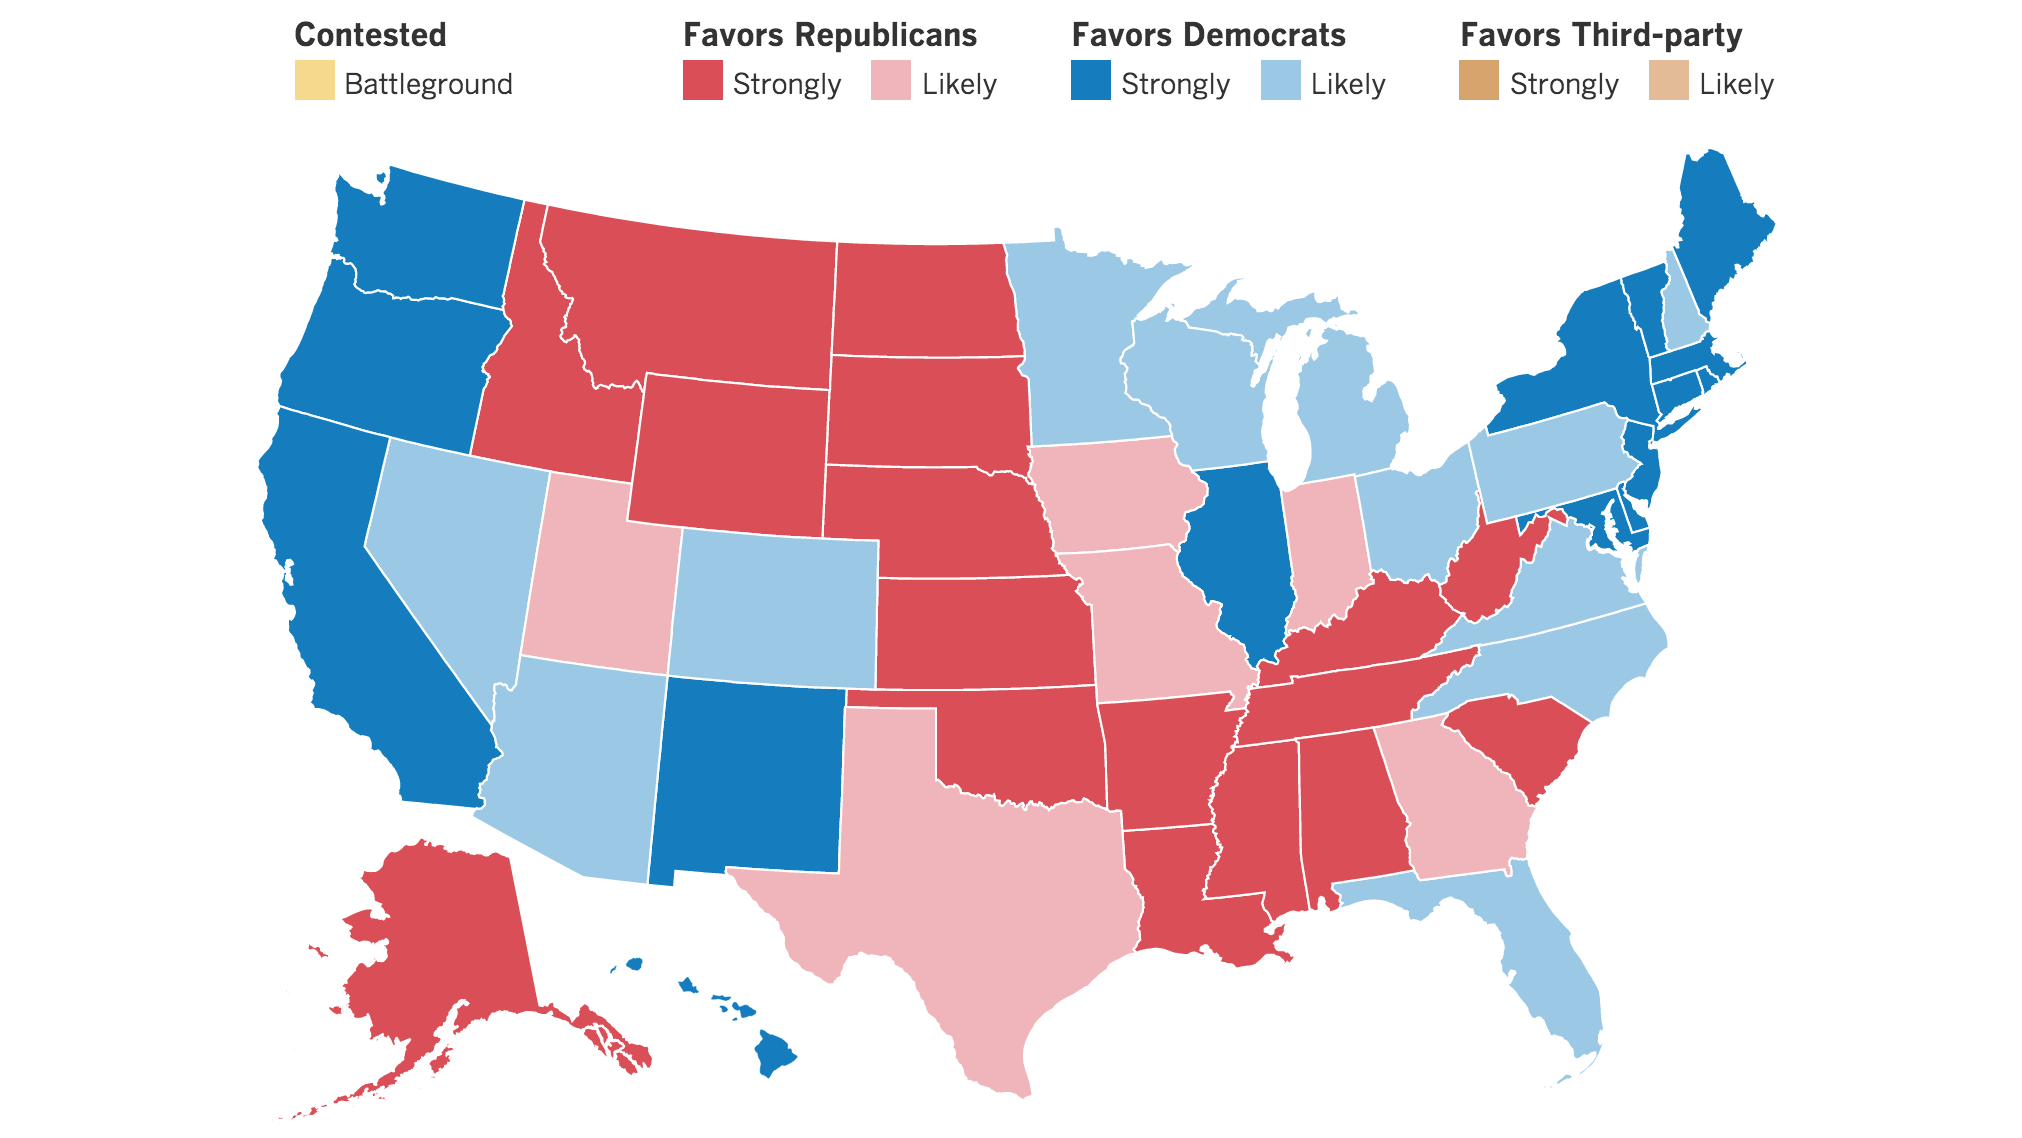 Weve Updated Our Electoral Map More States Move Away From Trump - 2016 electoral us map